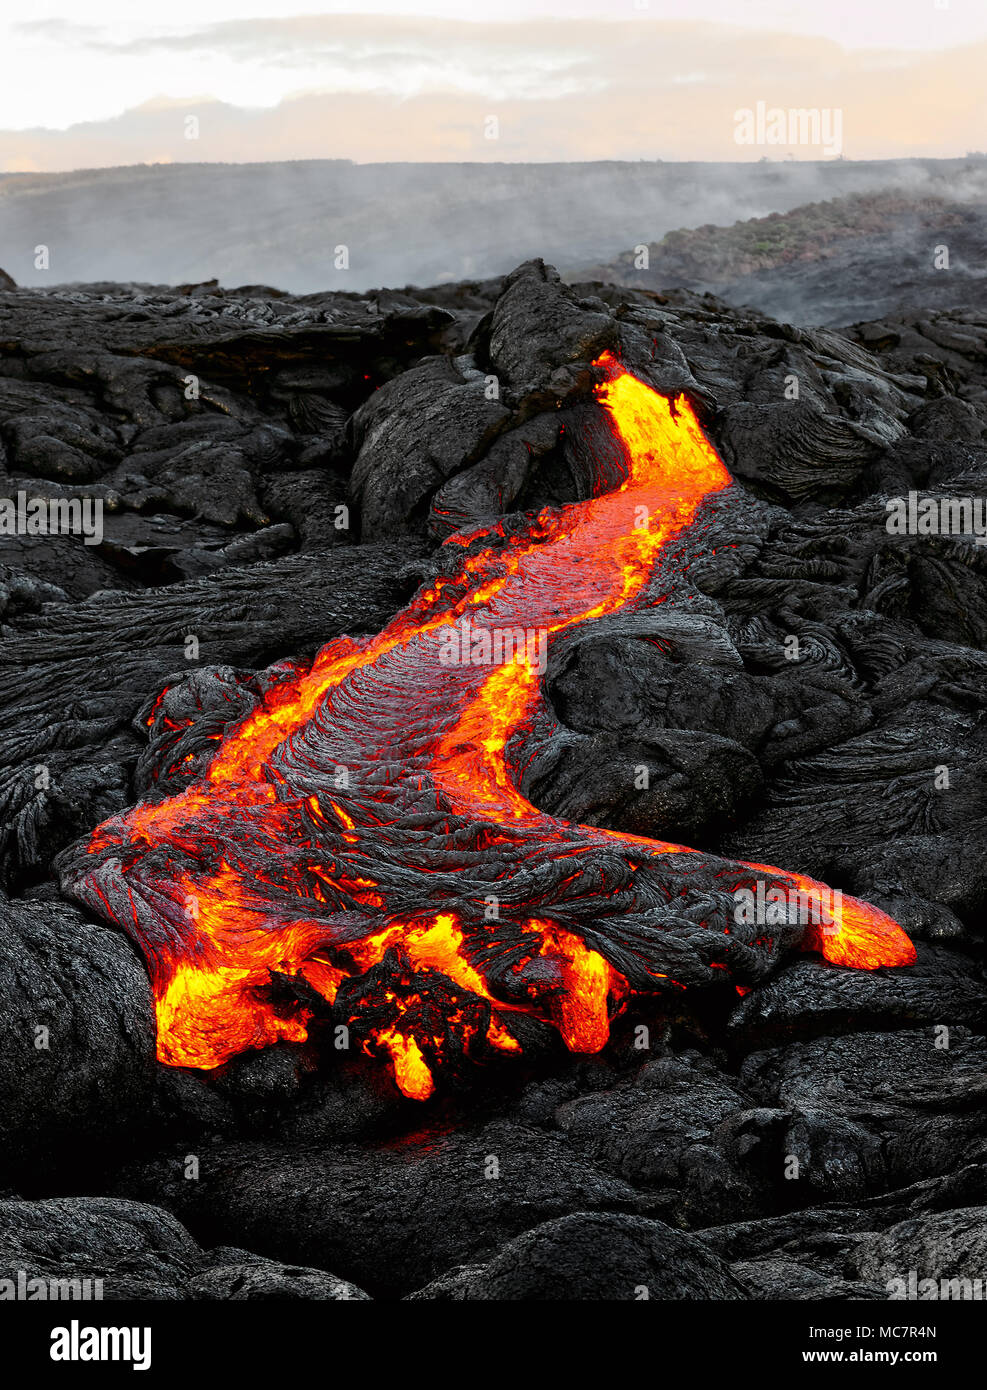 A lava flow emerges from an earth column and flows in a black volcanic landscape, in the sky shows the first daylight - Location: Hawaii, Big Island,  - Stock Image